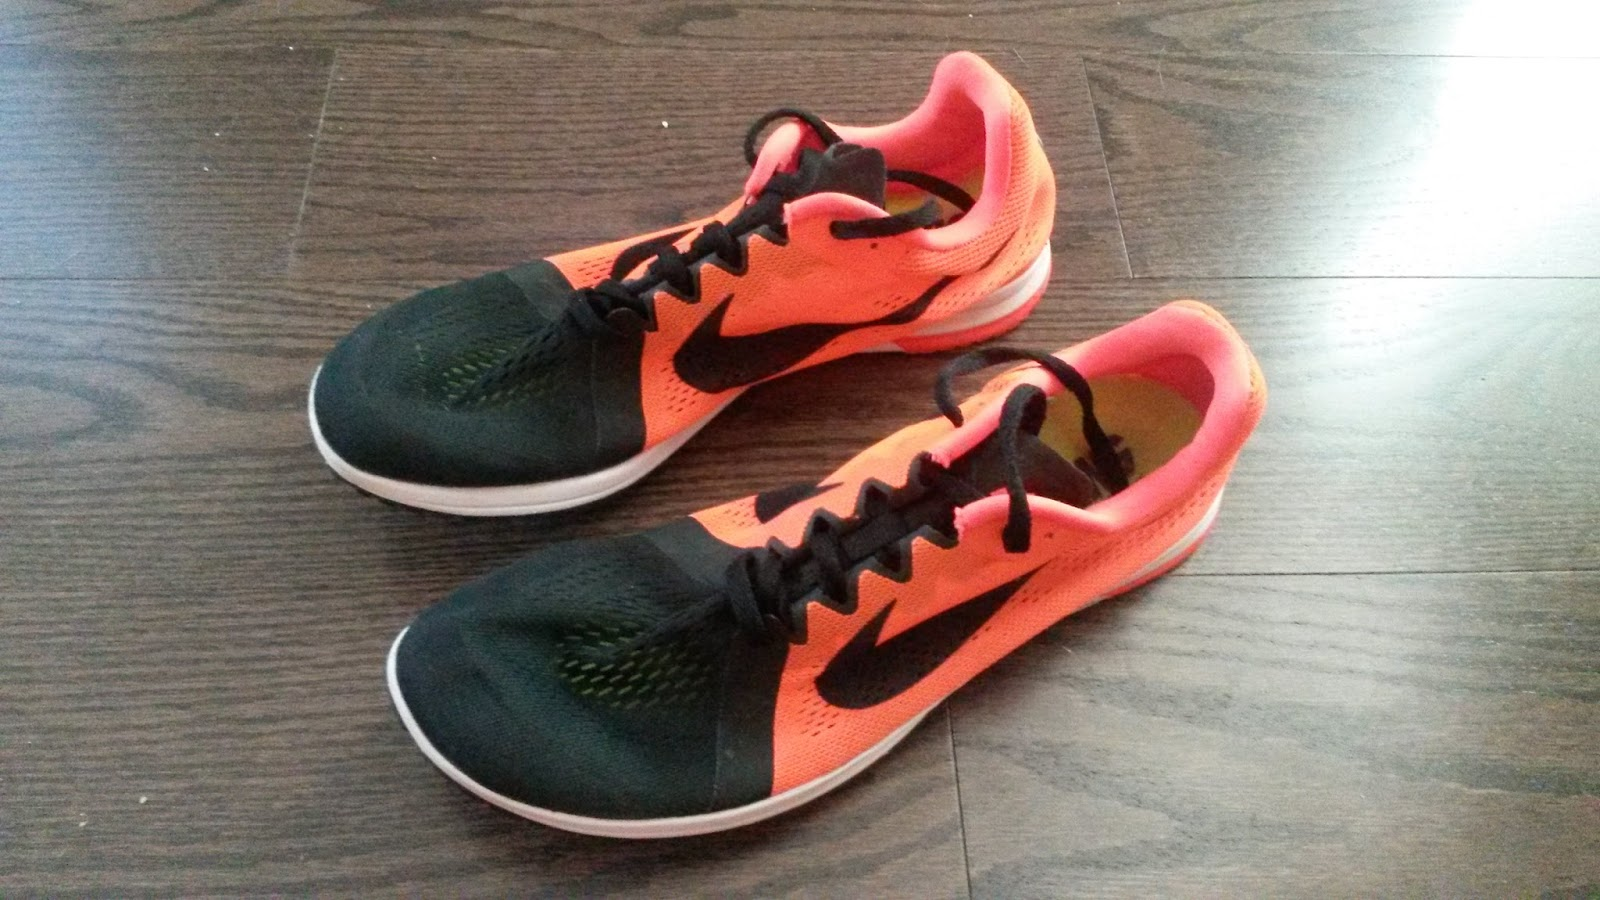 on sale 9fc0d 686c7 Nike Zoom Streak LT 3 Review